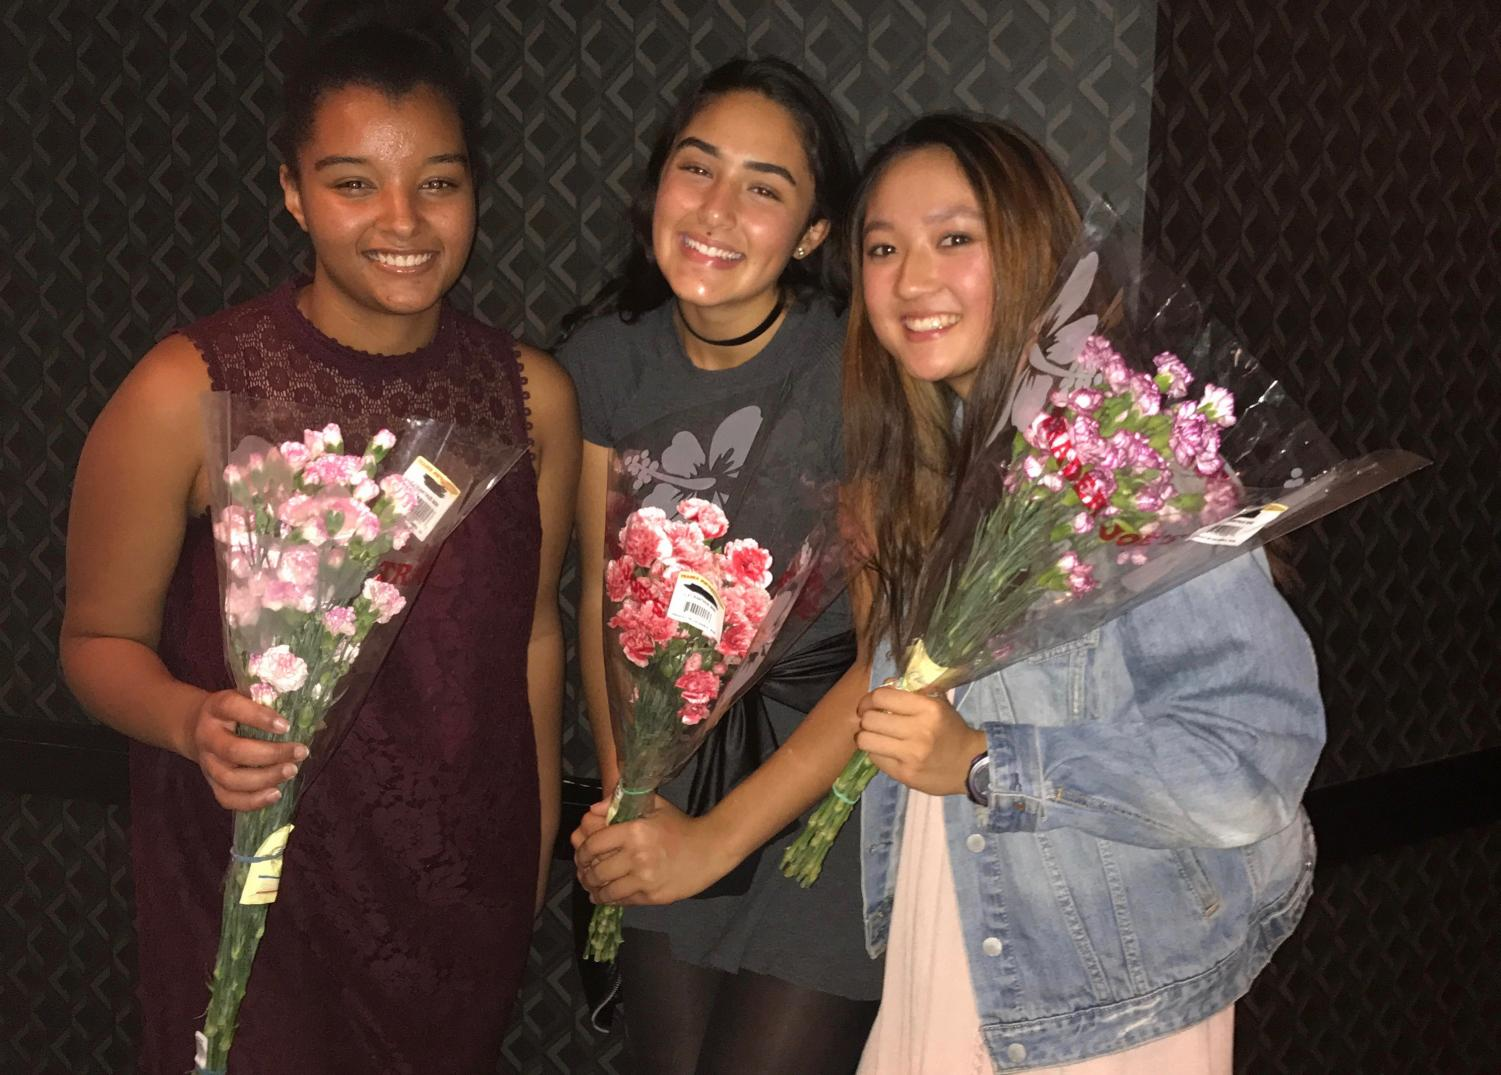 Junior Sidney Hosfield, sophomore Racquel Fhima and Junior Susi Hu at the tennis banquet Oct. 25. The three players received flowers after they were notified that they were chosen as captains for the 2018 season.